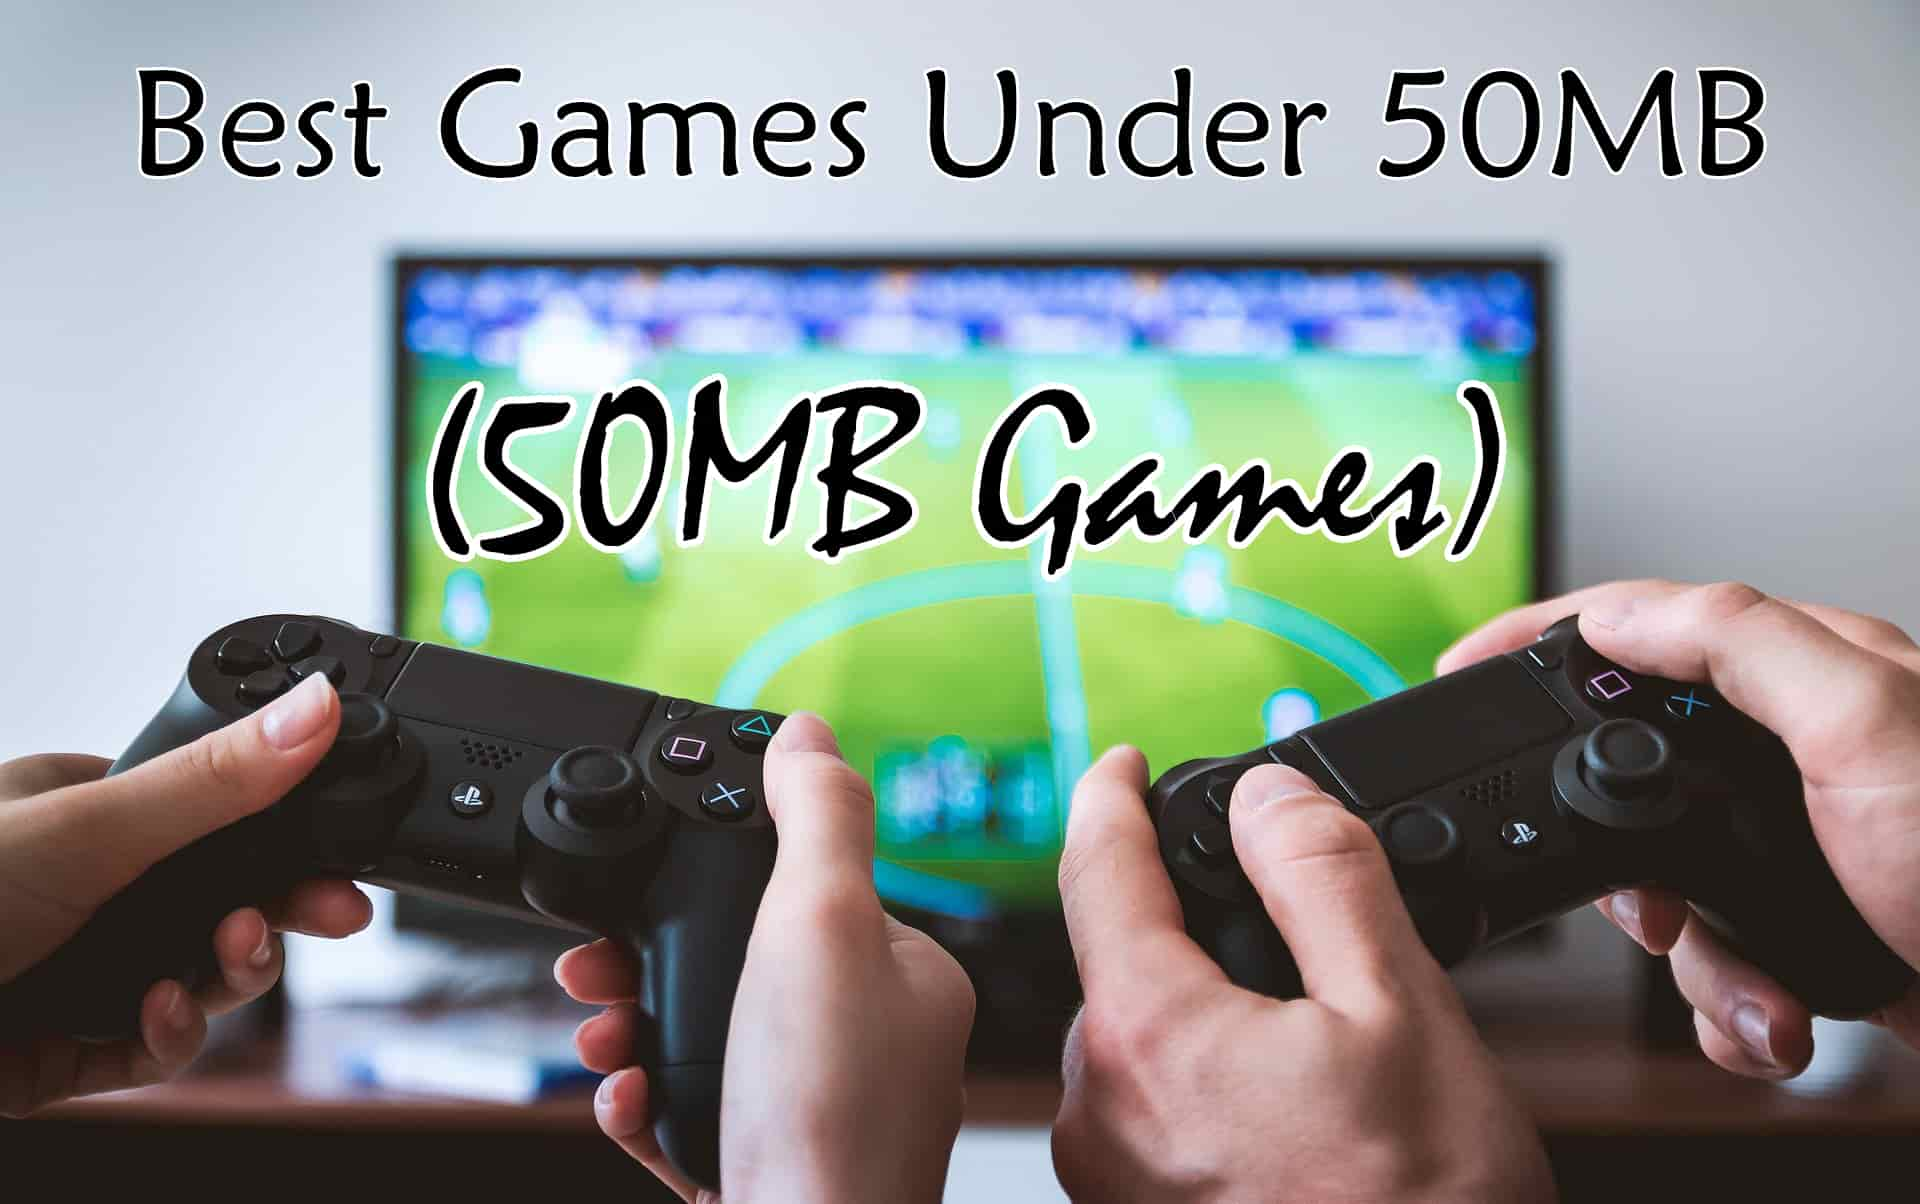 Best Games Under 50 MB